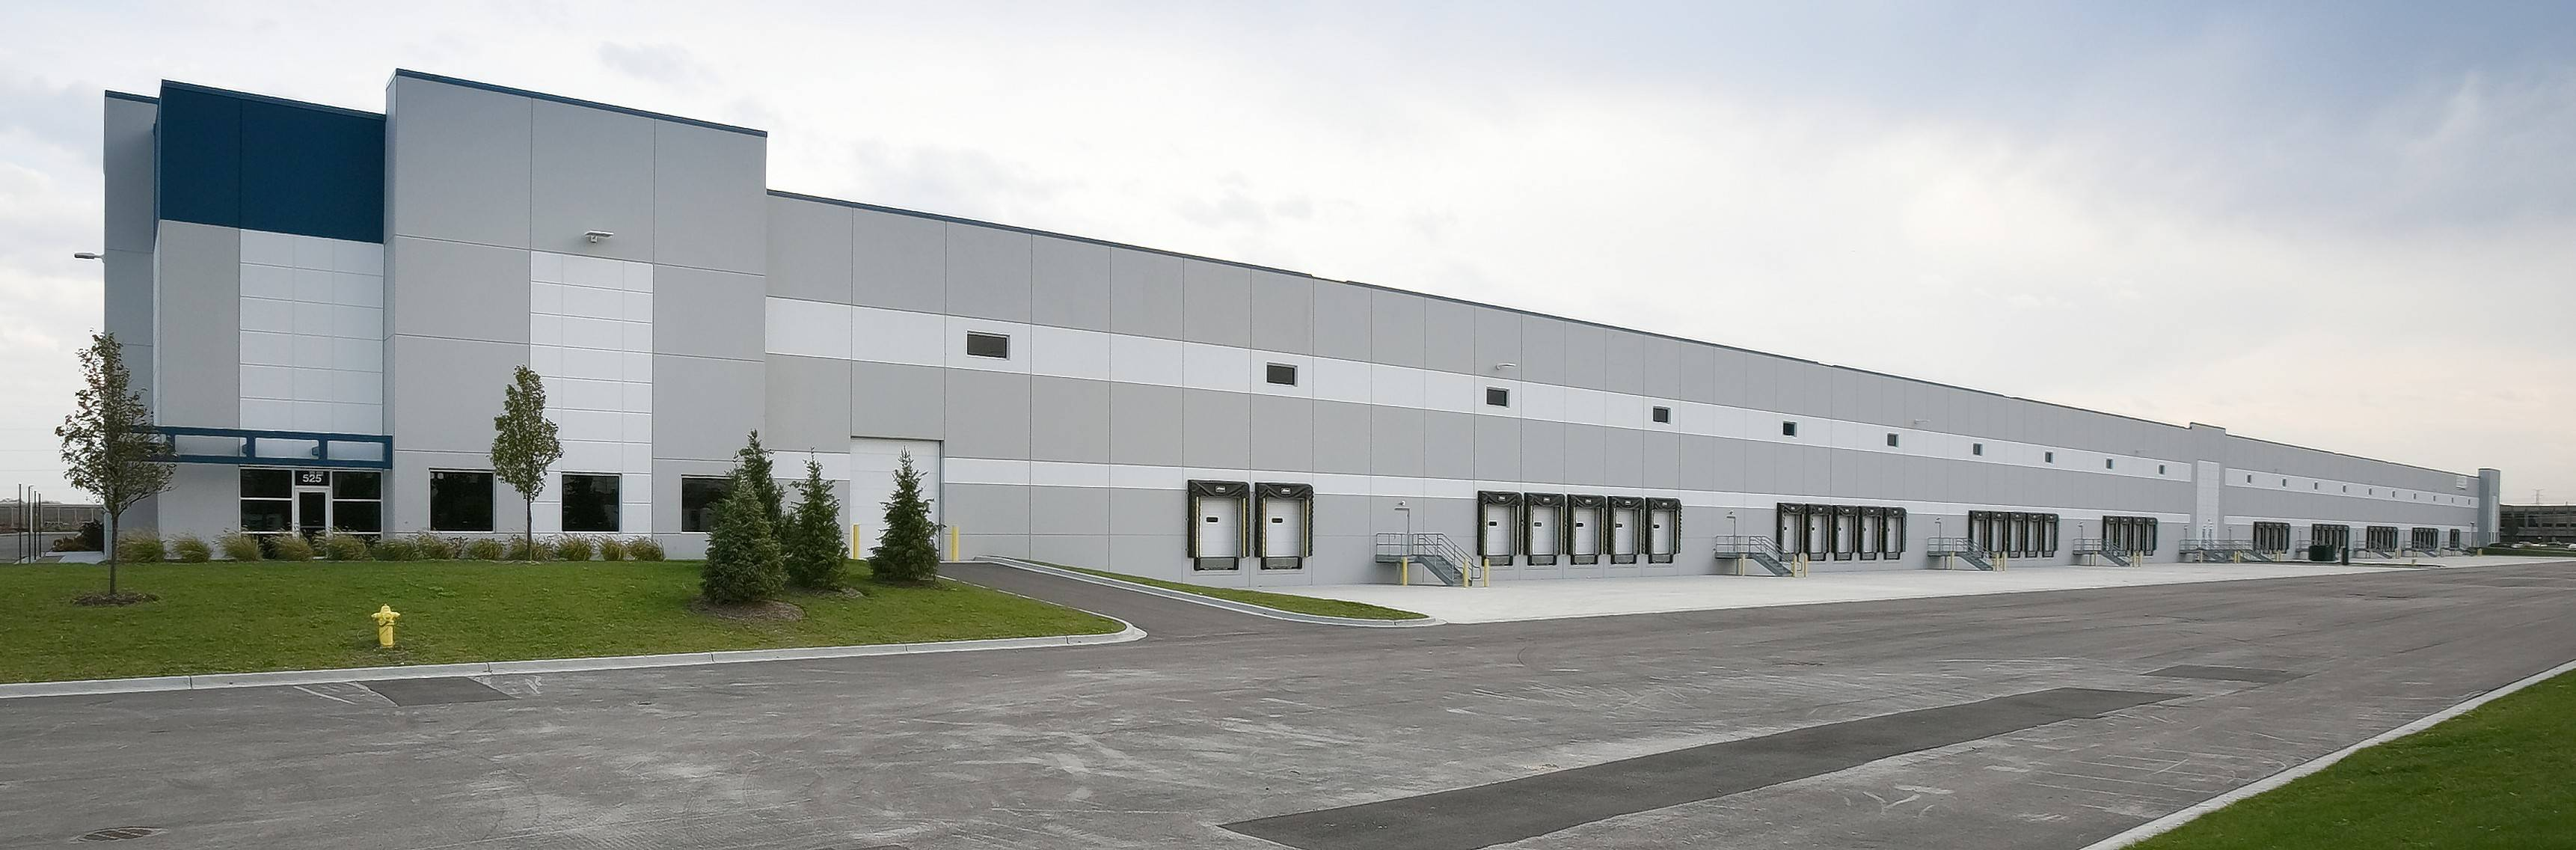 Bridge Development Partners recently completed a 132,000 sqaure foot lease in their Northlake cold storage facility.